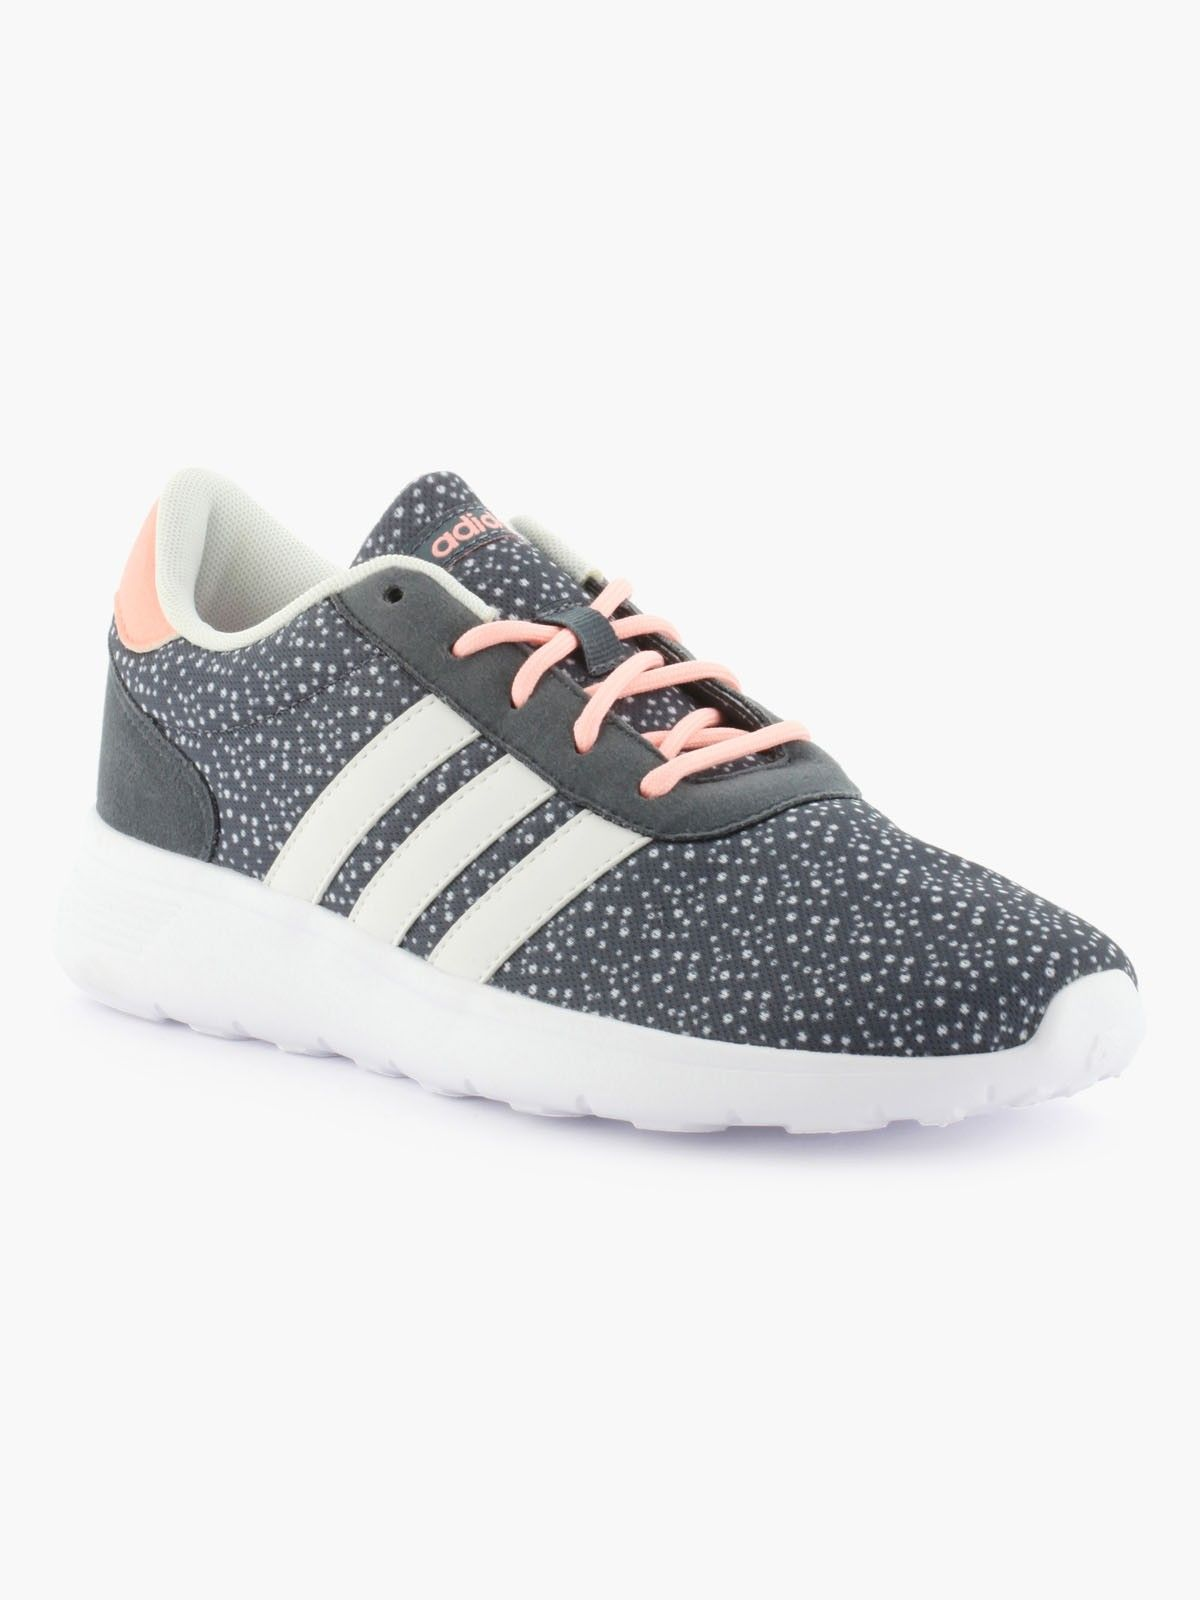 sports shoes ab1fa 2d4d0 httpwww.newtrendclothing.comcategoryadidas-shoes